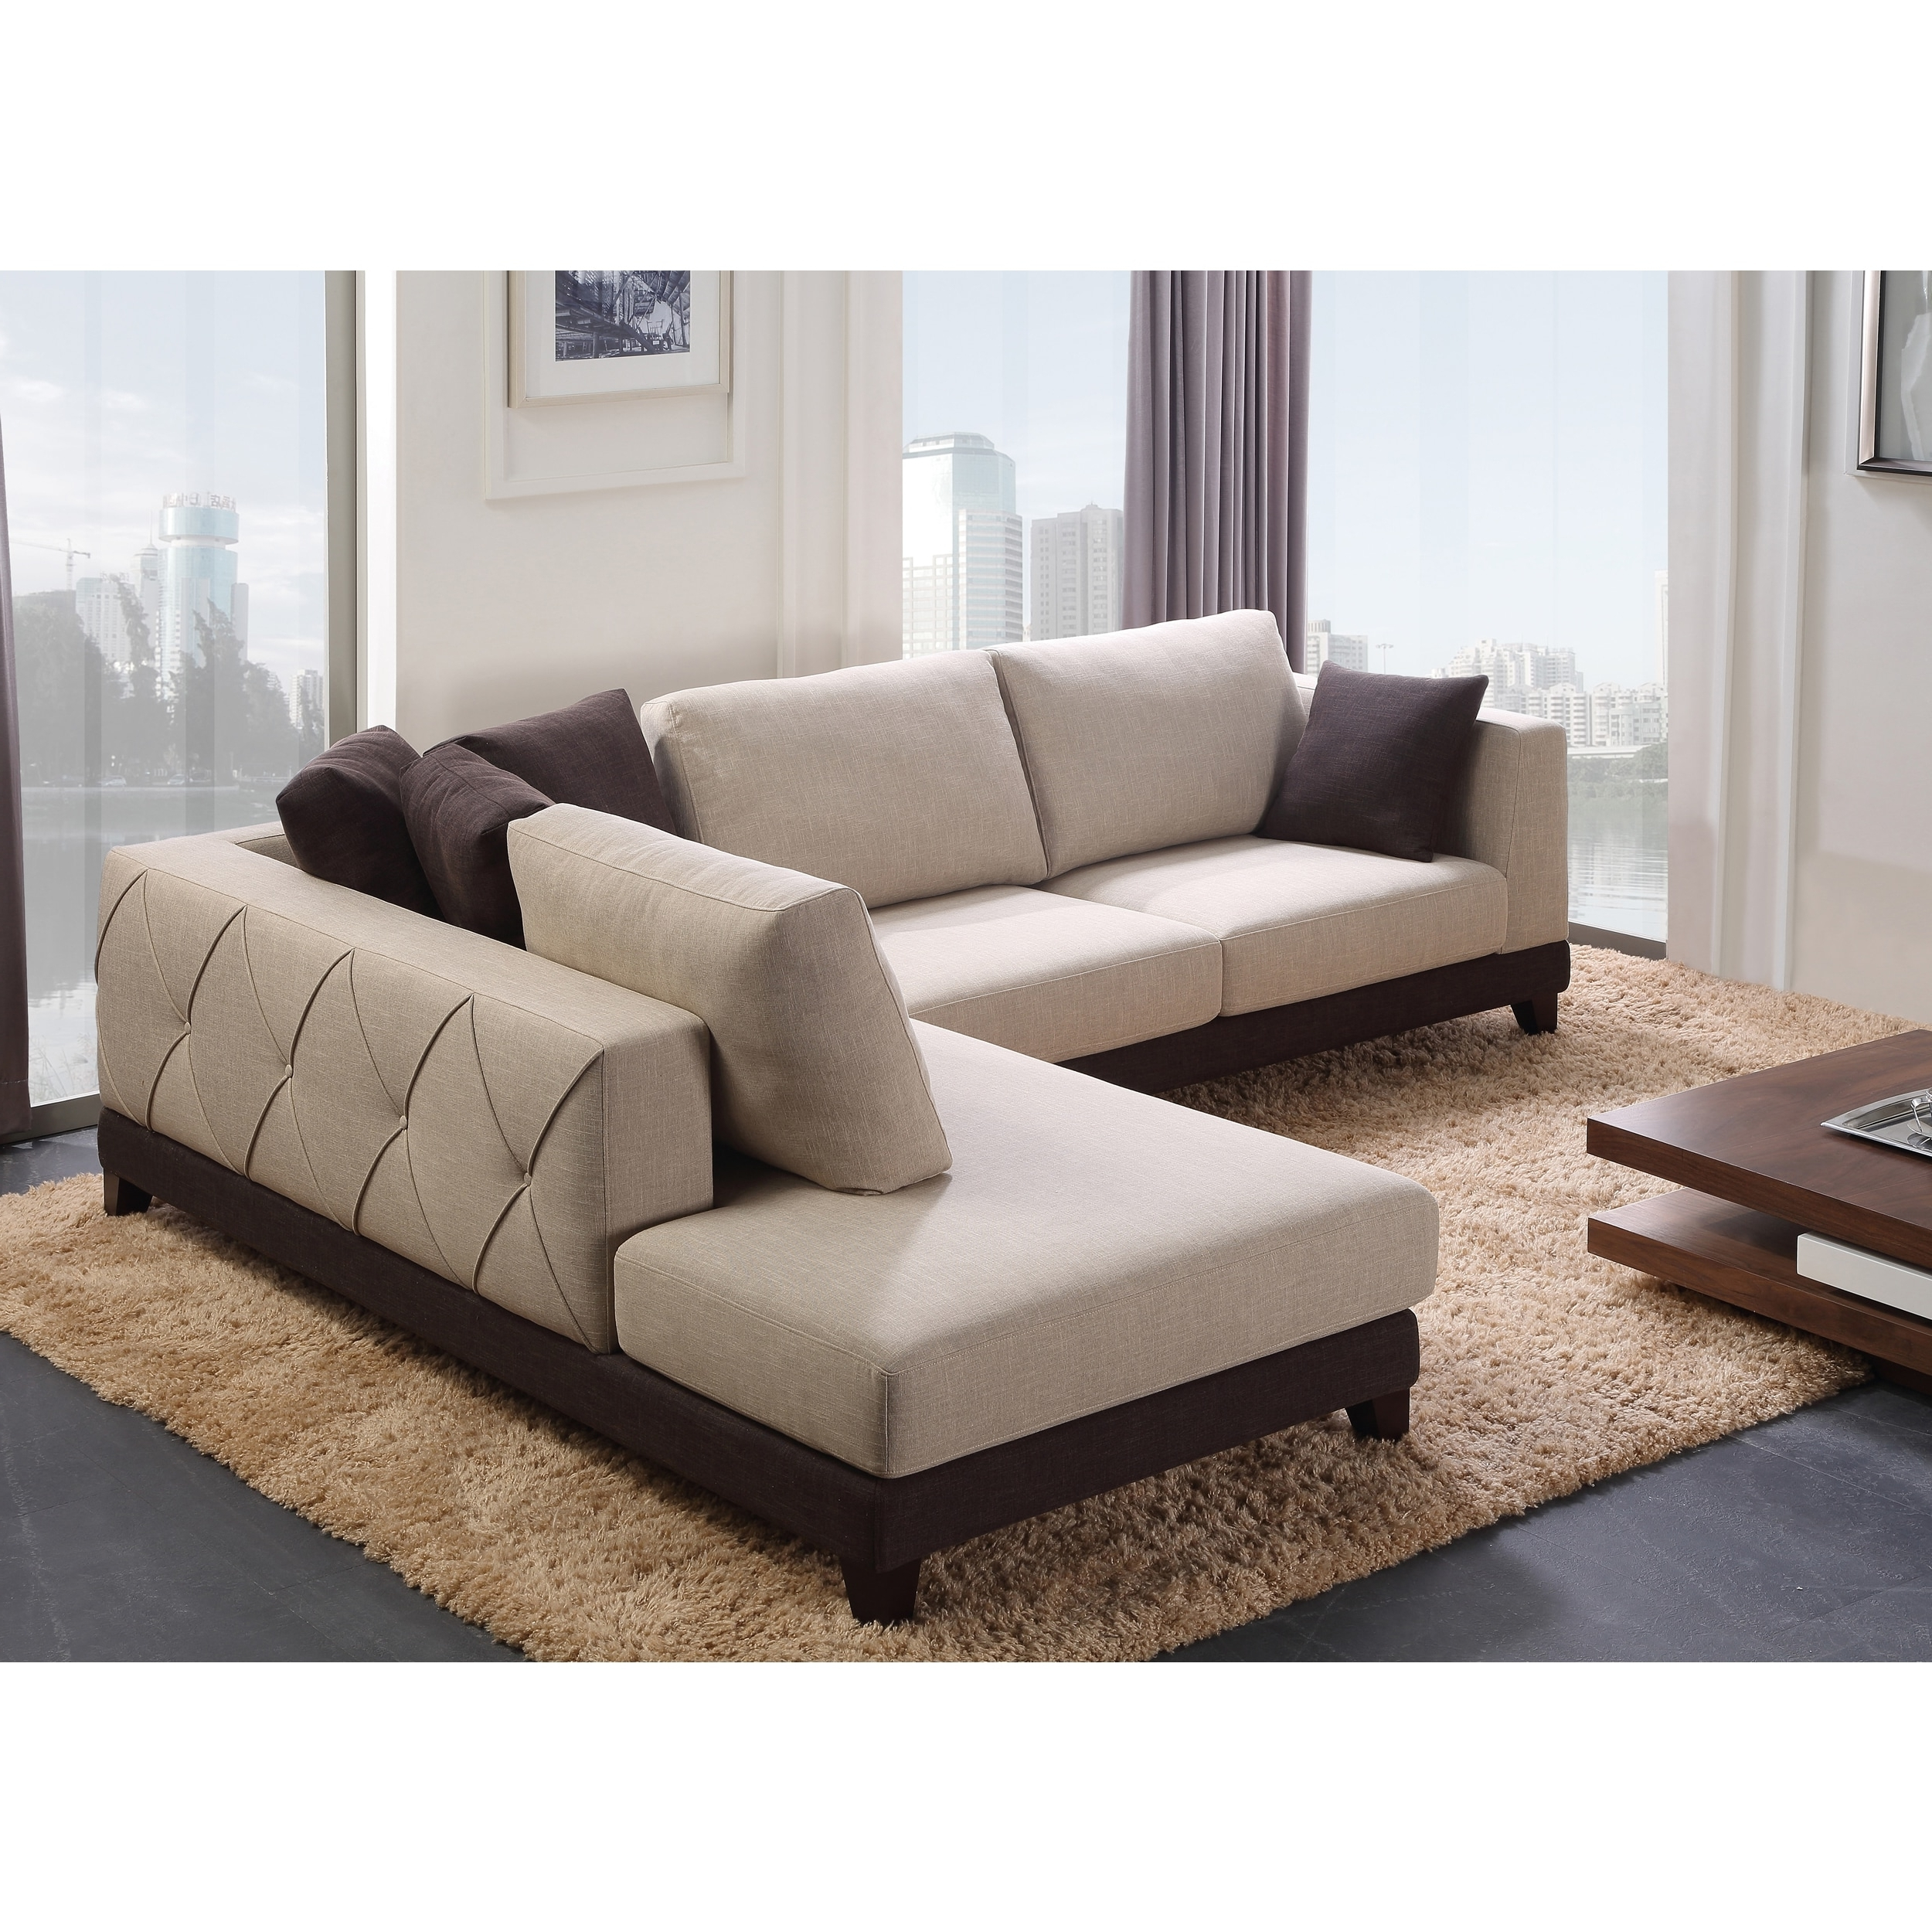 Abbyson Sectional Sofas Throughout Most Popular Abbyson 'verona' Fabric Sectional Sofa – Free Shipping Today (View 12 of 15)